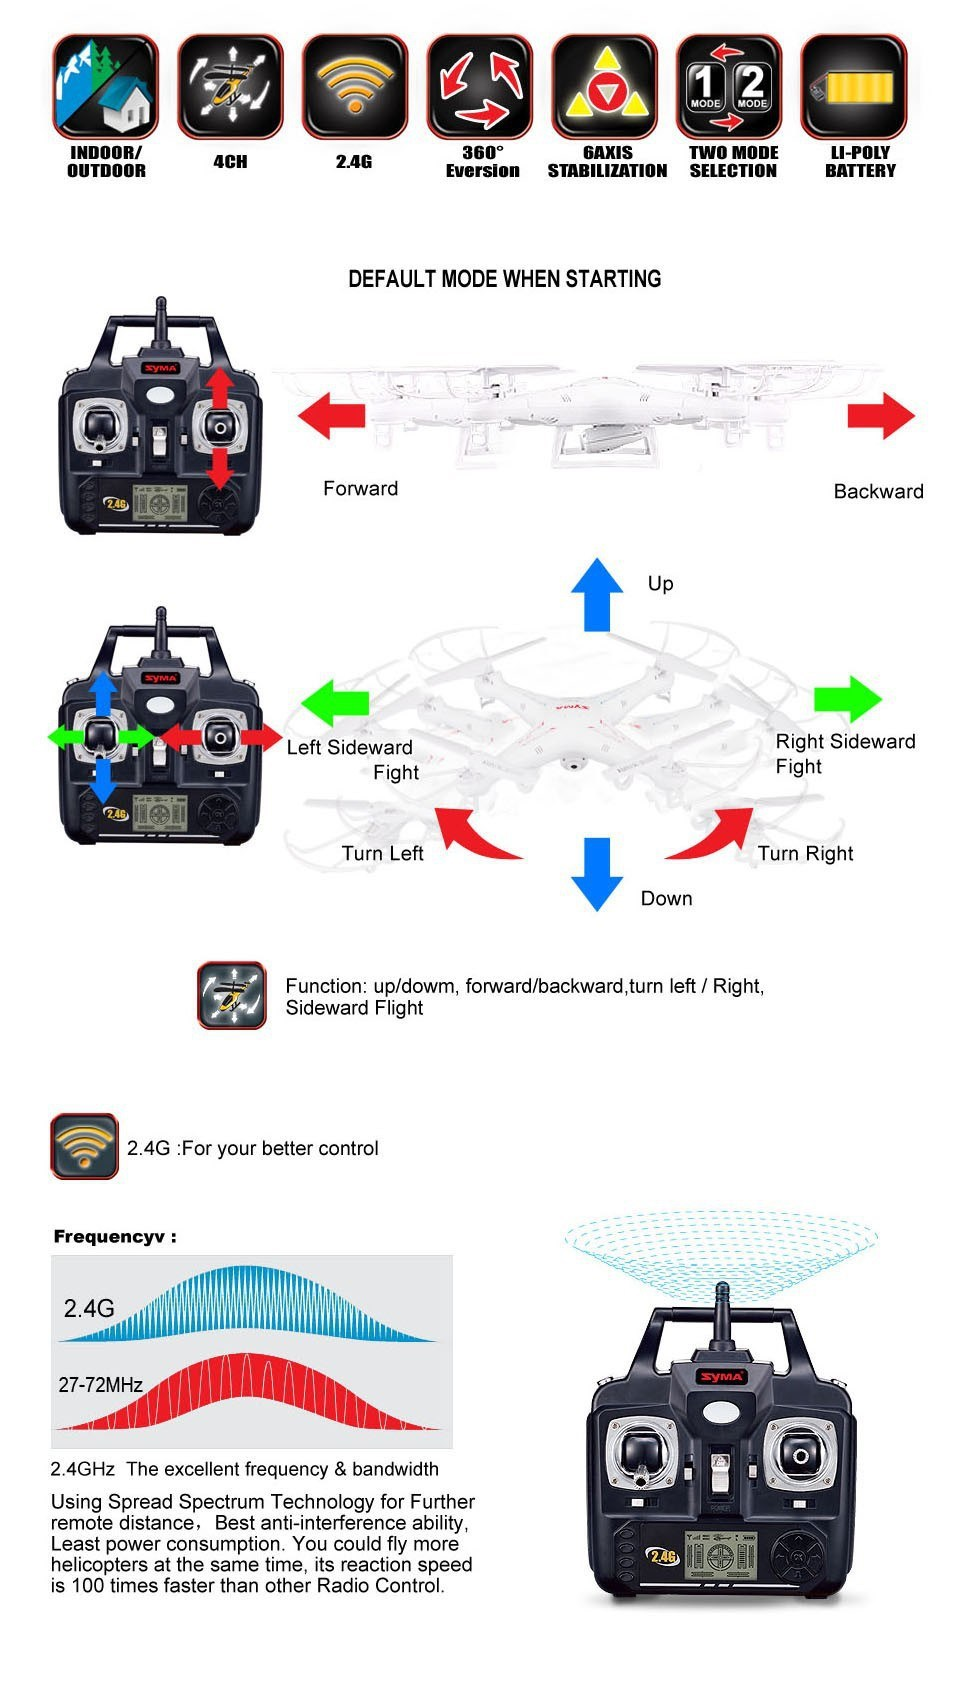 high end quadcopter newest with Free Shipping Syma X5c Quadrocopter 2 4g 6 Axis Gyro Hd Camera Rc Quadcopter Rtf Helicopter Rc Drone With 2 0mp Camera on U45 Drone With Hd Camera Altitude Hold And One Button Take Off And Landing Rc Quadcopter Includes Bonus 4gb Sandisk Micro Sd Card And Extra Battery Exclusive Black Yellow Color as well Free Shipping Syma X5c Quadrocopter 2 4g 6 Axis Gyro Hd Camera Rc Quadcopter Rtf Helicopter Rc Drone With 2 0mp Camera furthermore Free Shipping Syma X5c Quadrocopter 2 4g 6 Axis Gyro Hd Camera Rc Quadcopter Rtf Helicopter Rc Drone With 2 0mp Camera besides Free Shipping Syma X5c Quadrocopter 2 4g 6 Axis Gyro Hd Camera Rc Quadcopter Rtf Helicopter Rc Drone With 2 0mp Camera besides 5th Gen 3d Vr Glasses 3d Vr Headset Virtual Reality Box Glossy Finish Front Panel Light Weight Iphone 5 5s 6 Plus Samsung S3 Edge Note 4 And 3 5 5 5 Inch Smartphone For 3d Movies And Games.